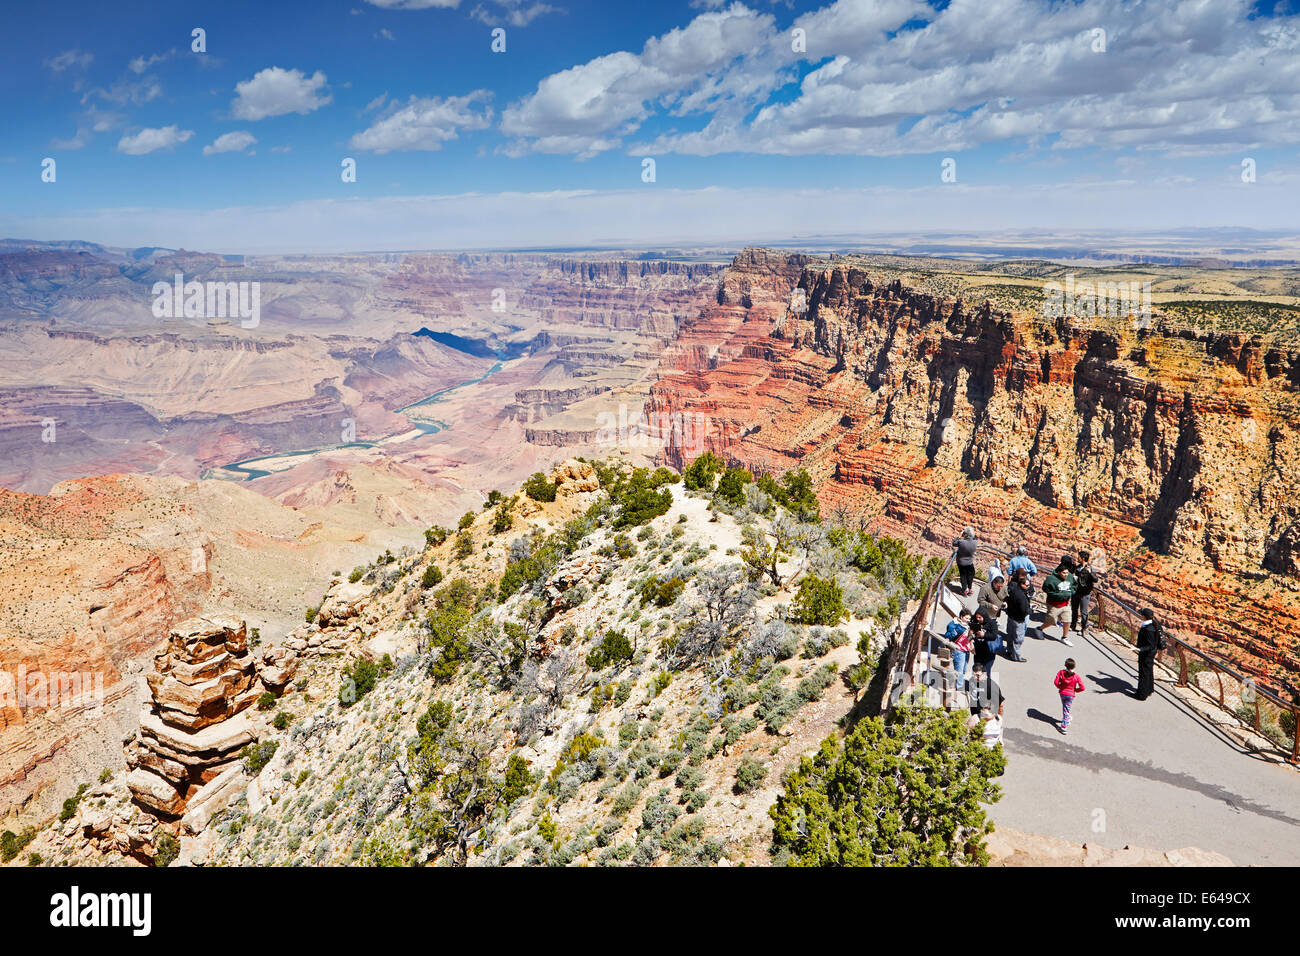 Scenic view of the Grand Canyon and Colorado river from Grand Canyon South Rim. Arizona, USA. - Stock Image